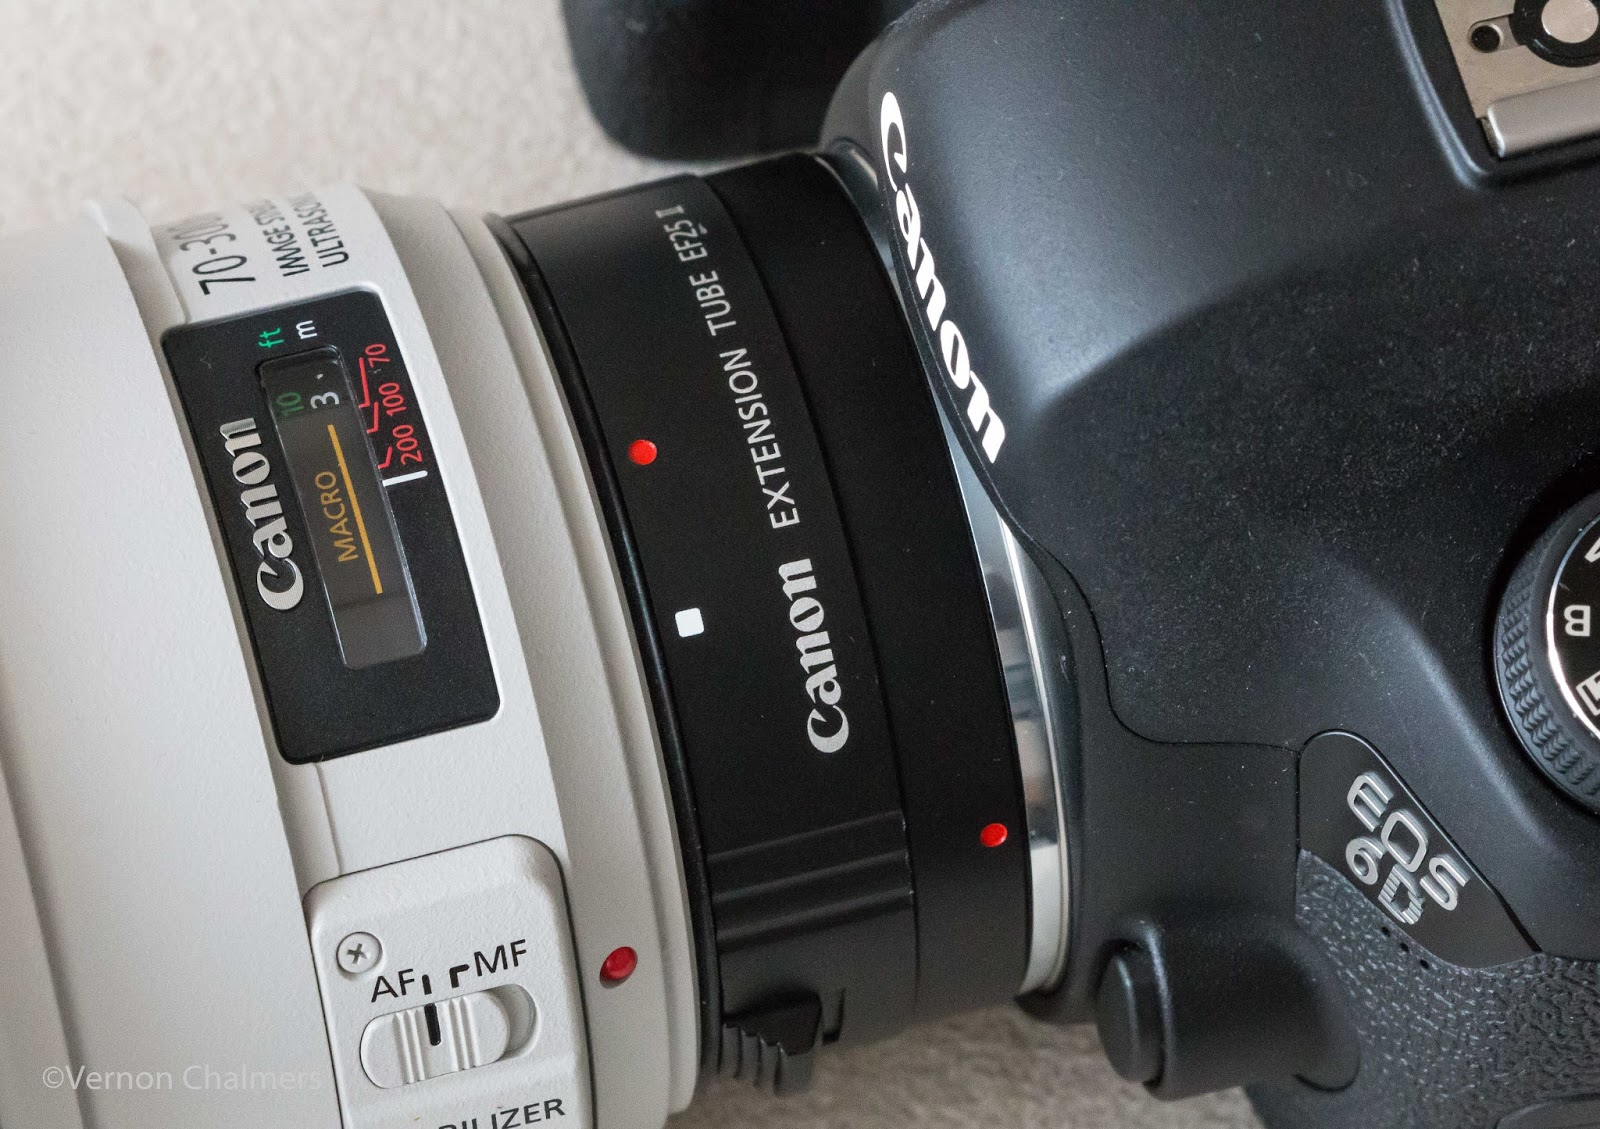 vernon chalmers photography canon ef lens full time manual focus rh vernonchalmers photography what is full time manual focus canon Full-Time Job